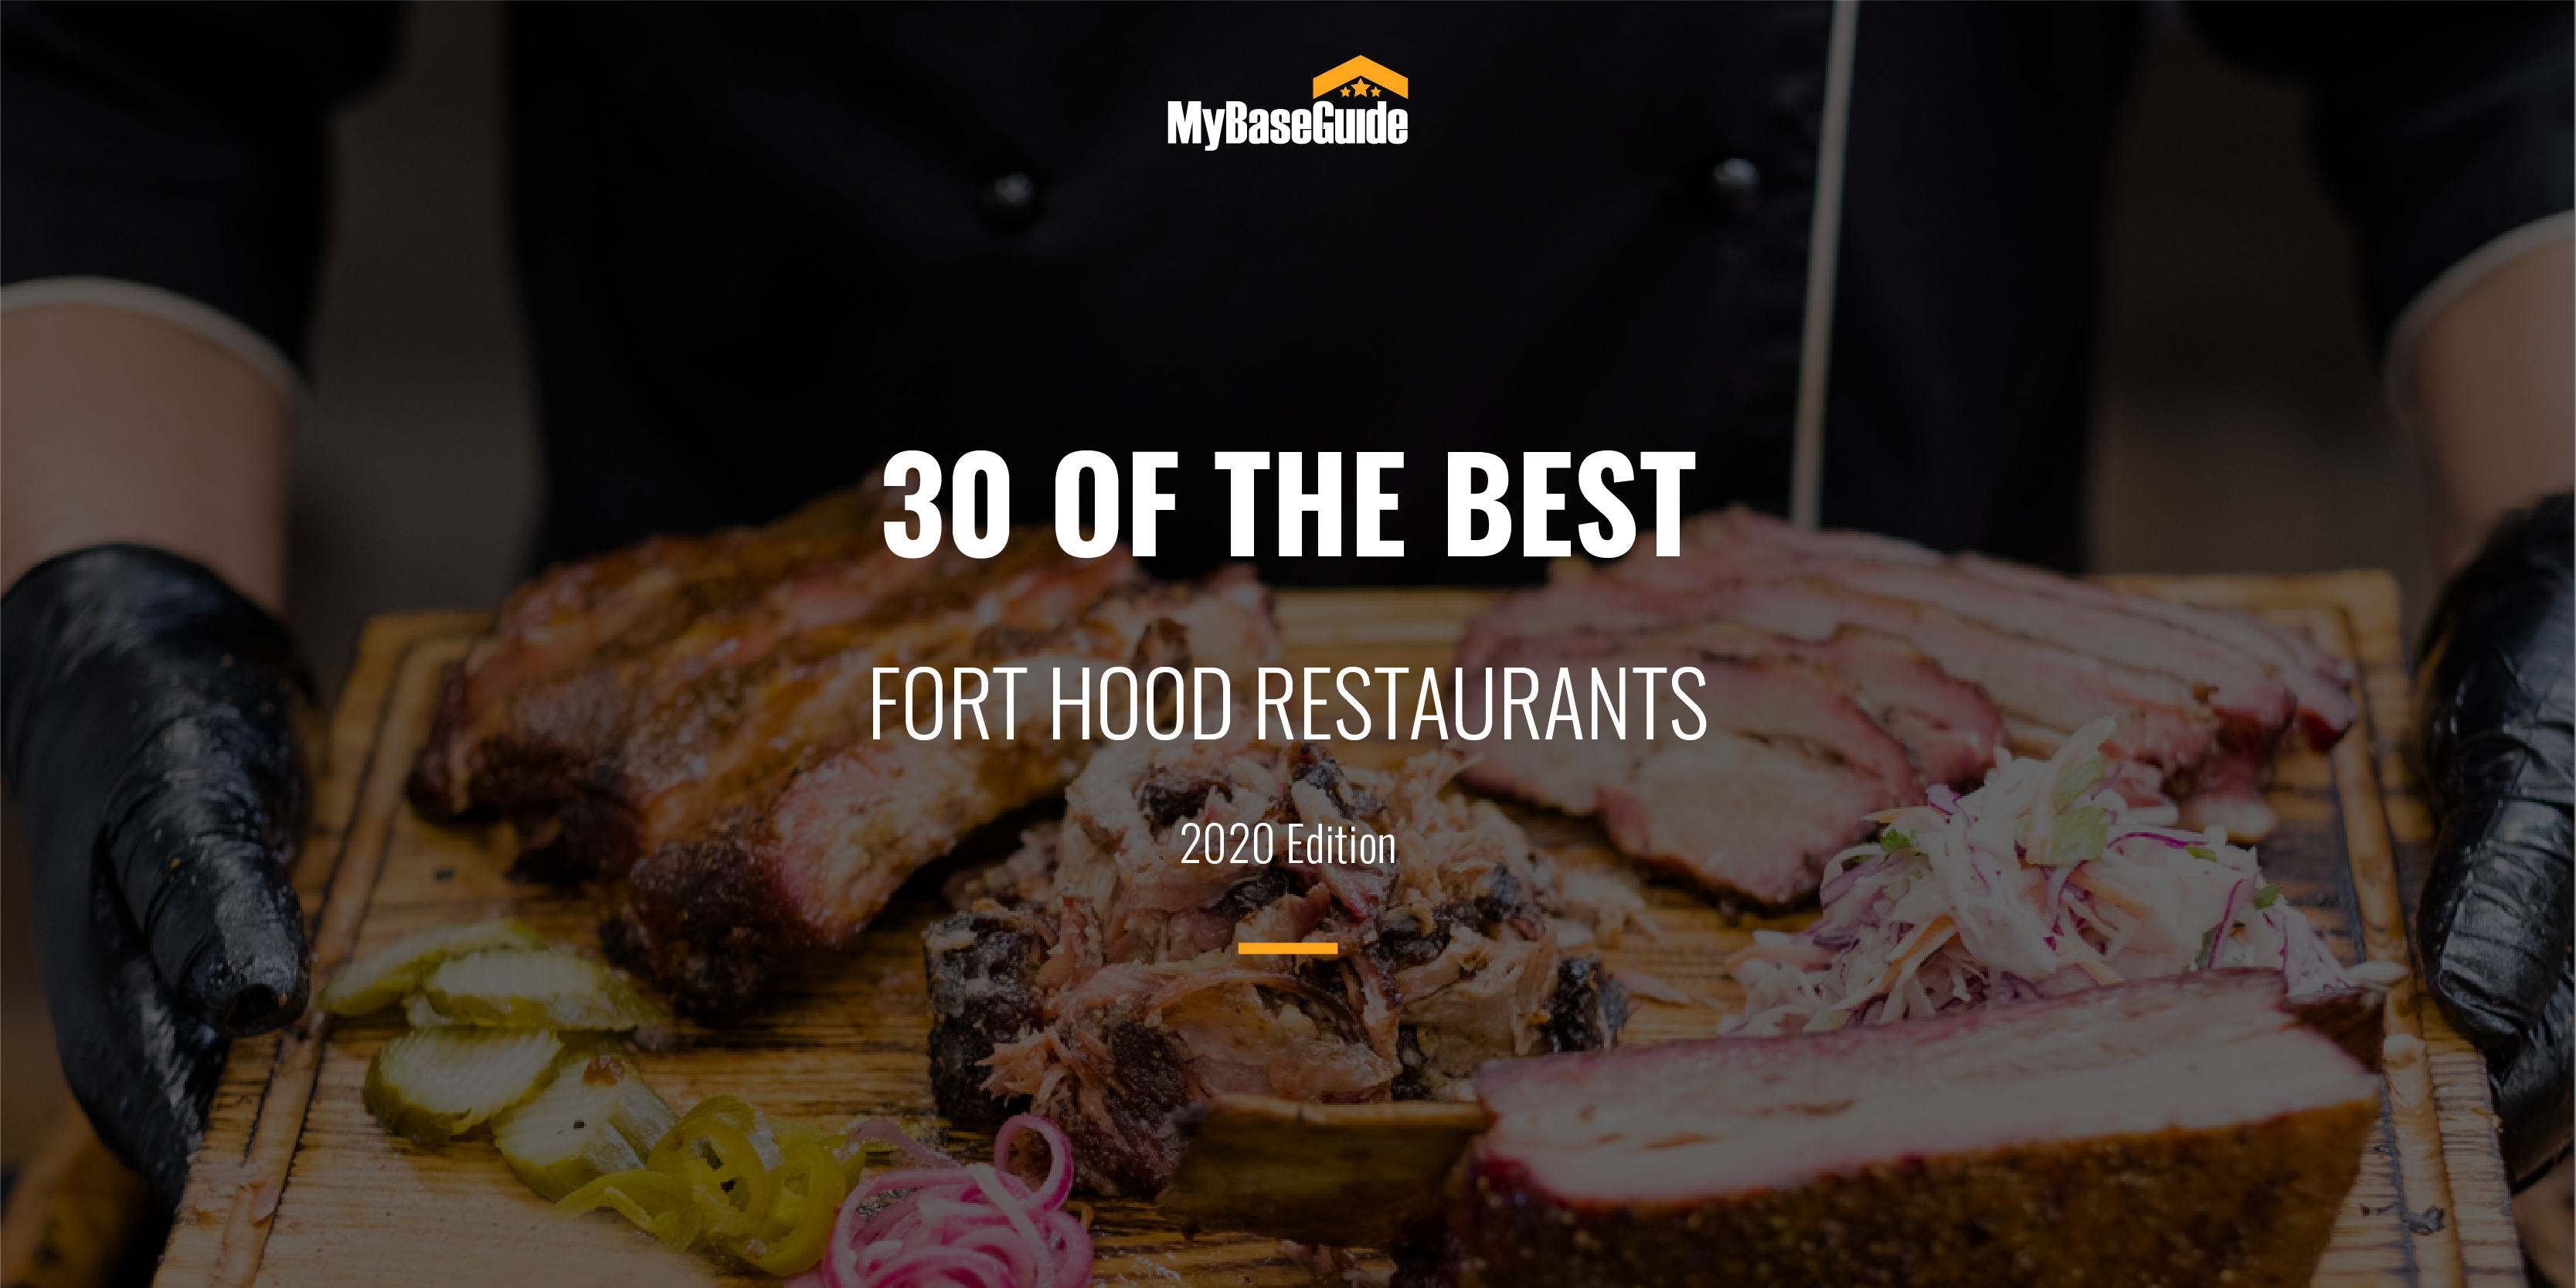 Fort Hood Restaurants